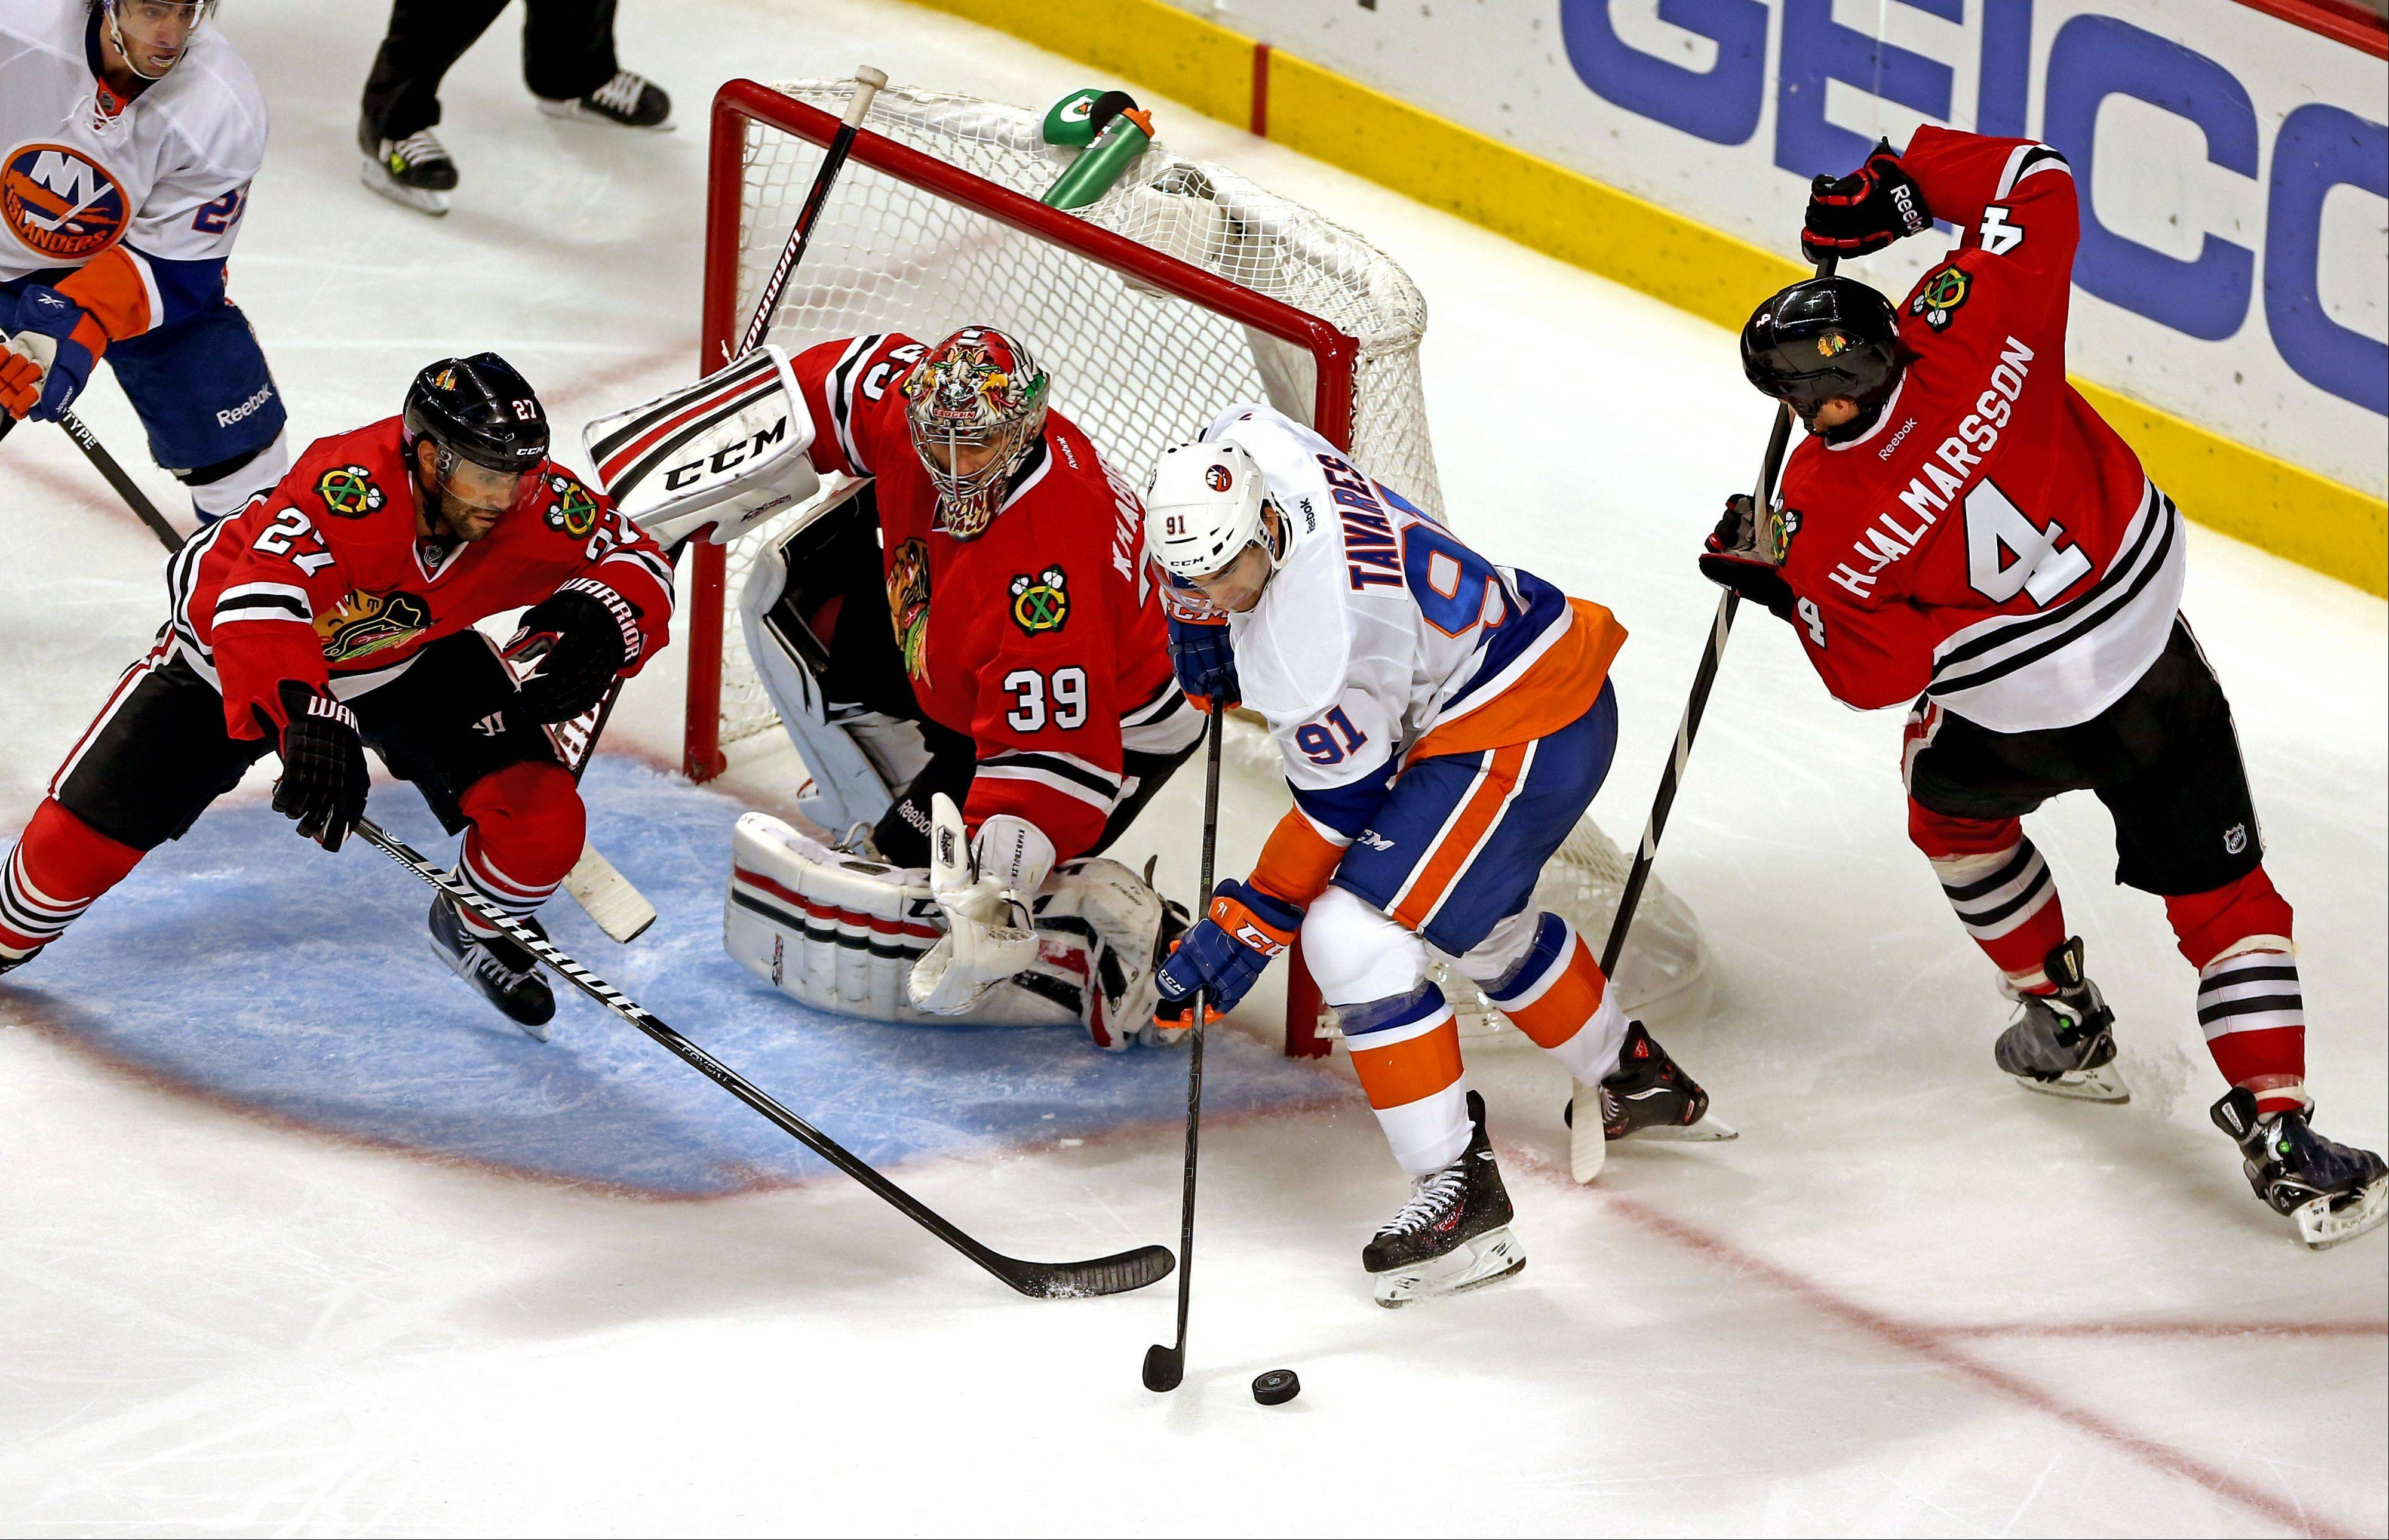 John Tavares of the Islanders draws a crowd near the Hawks net late in the third period, including goalie Nikolai Khabibulin and defensemen Johnny Oduya and Niklas Hjalmarsson at the United Center on Friday night.